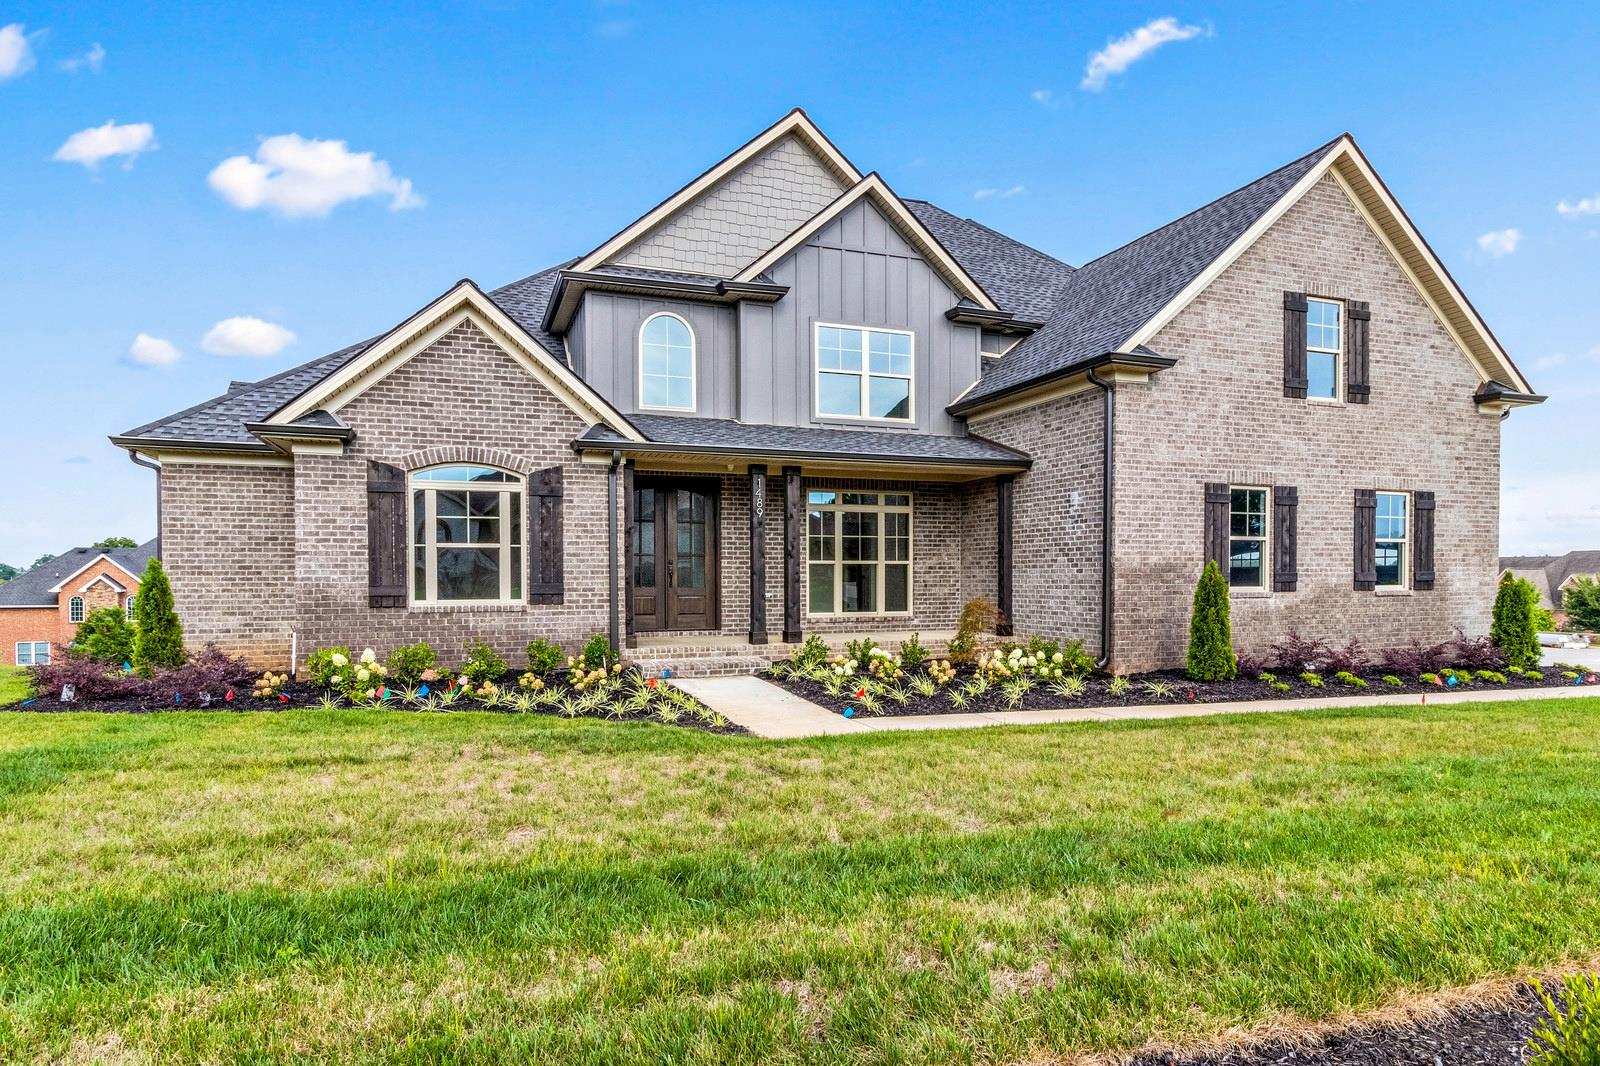 1489 Overlook Pointe, Clarksville, TN 37043 - Clarksville, TN real estate listing